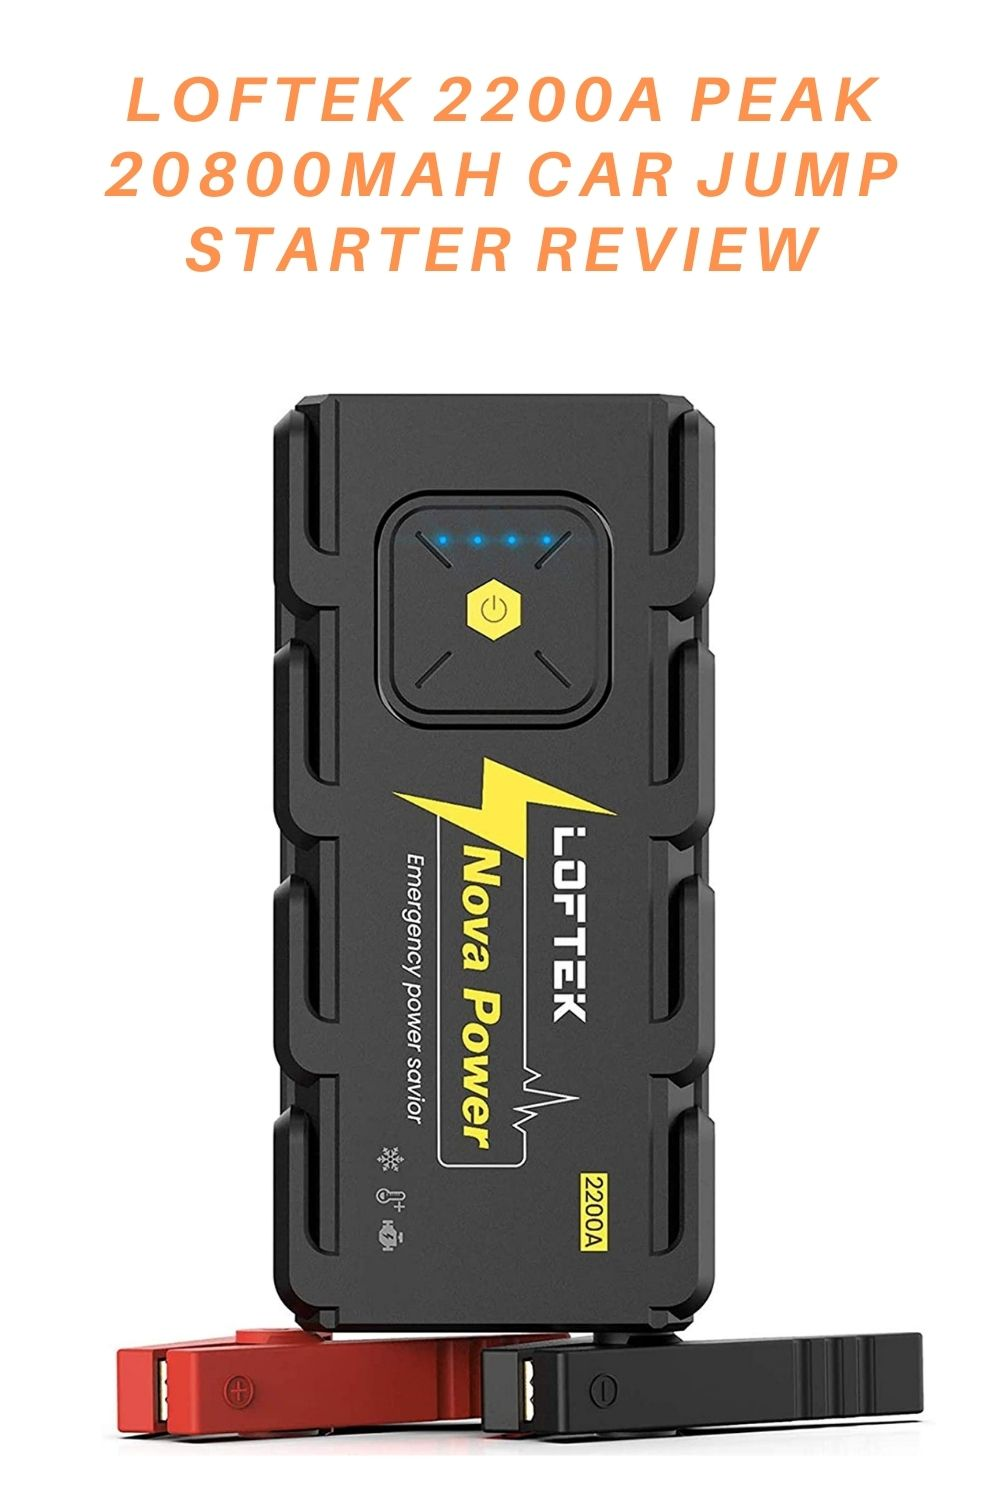 LOFTEK 2200A Peak 20800mAh Car Jump Starter Review